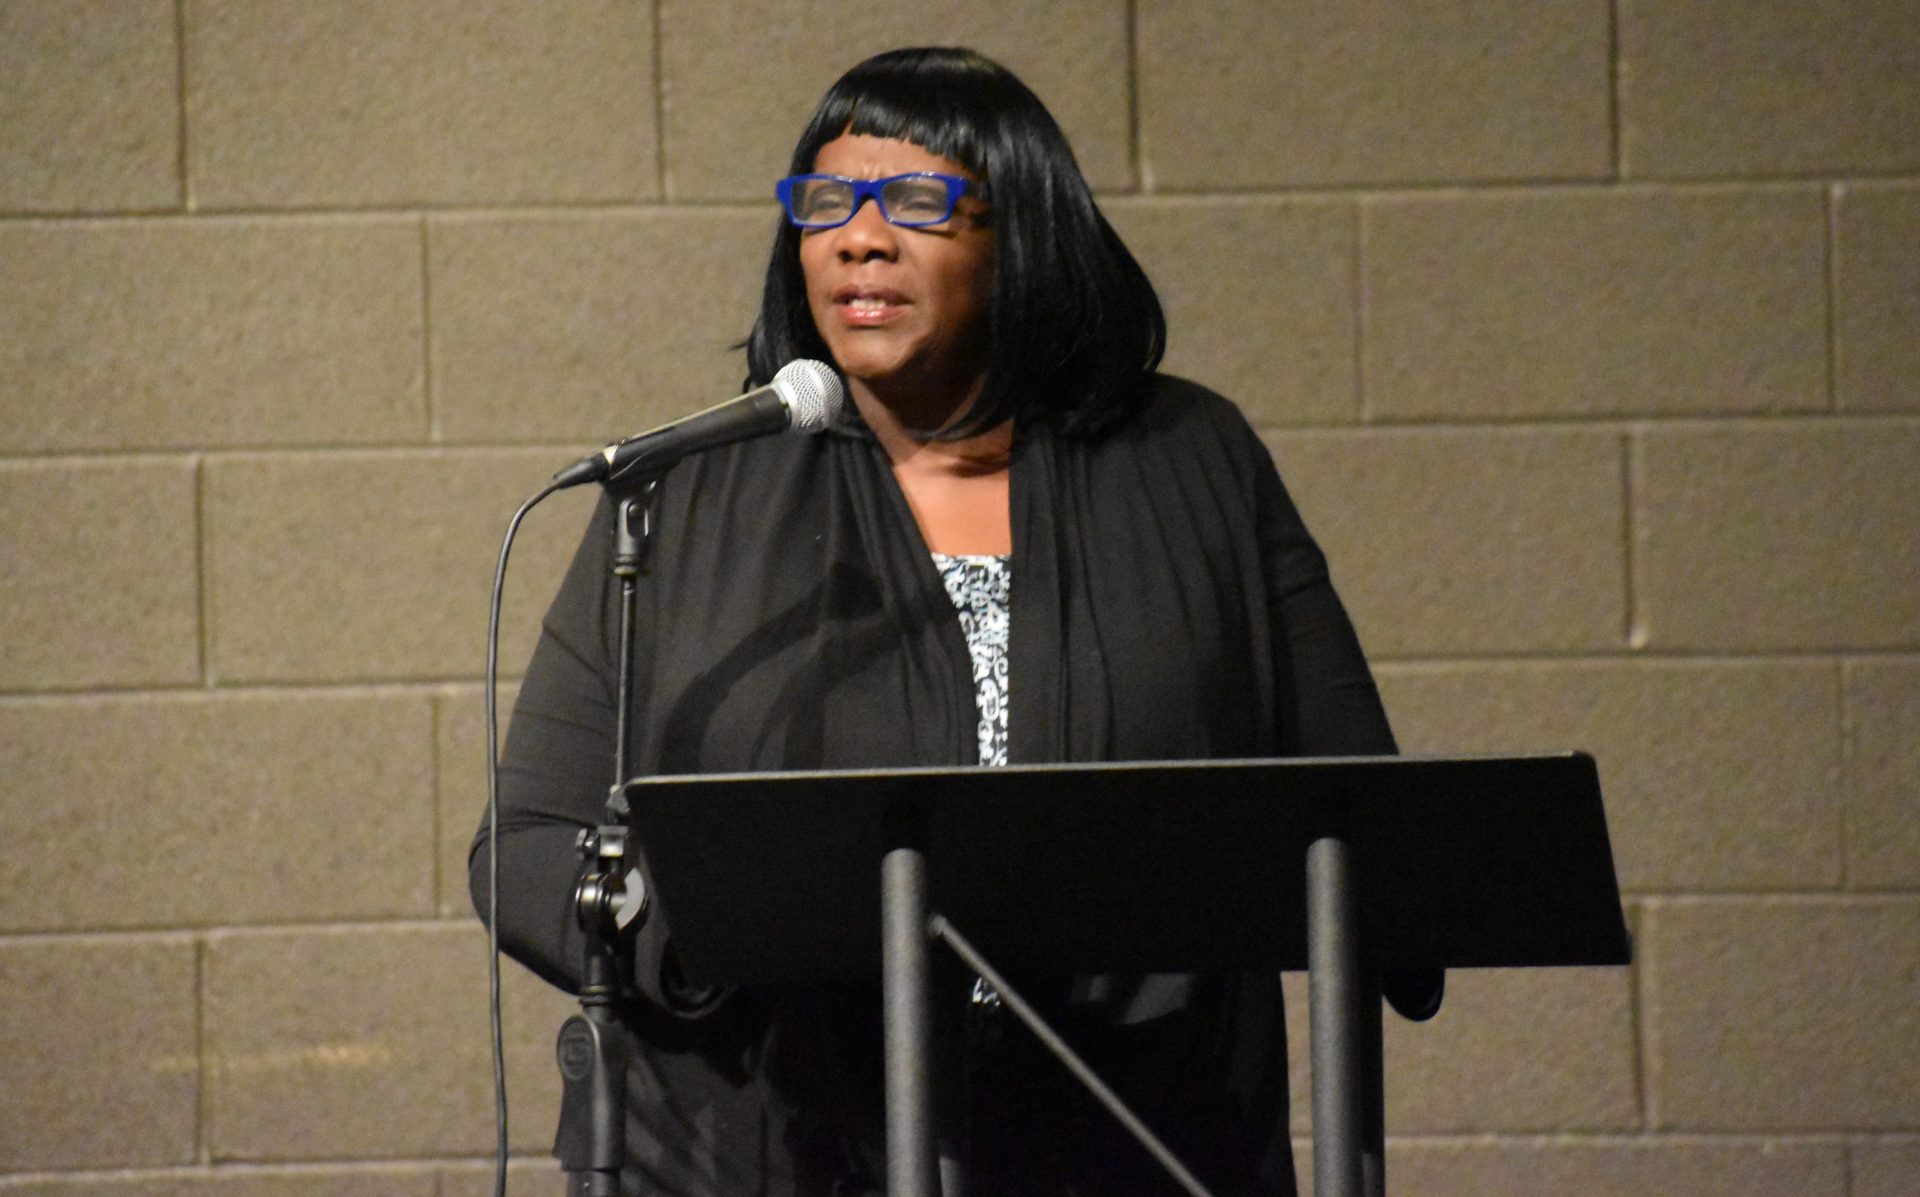 Serena Frost Gillespie speaks during a community event on April 23, 2019, at Logos Academy in York.